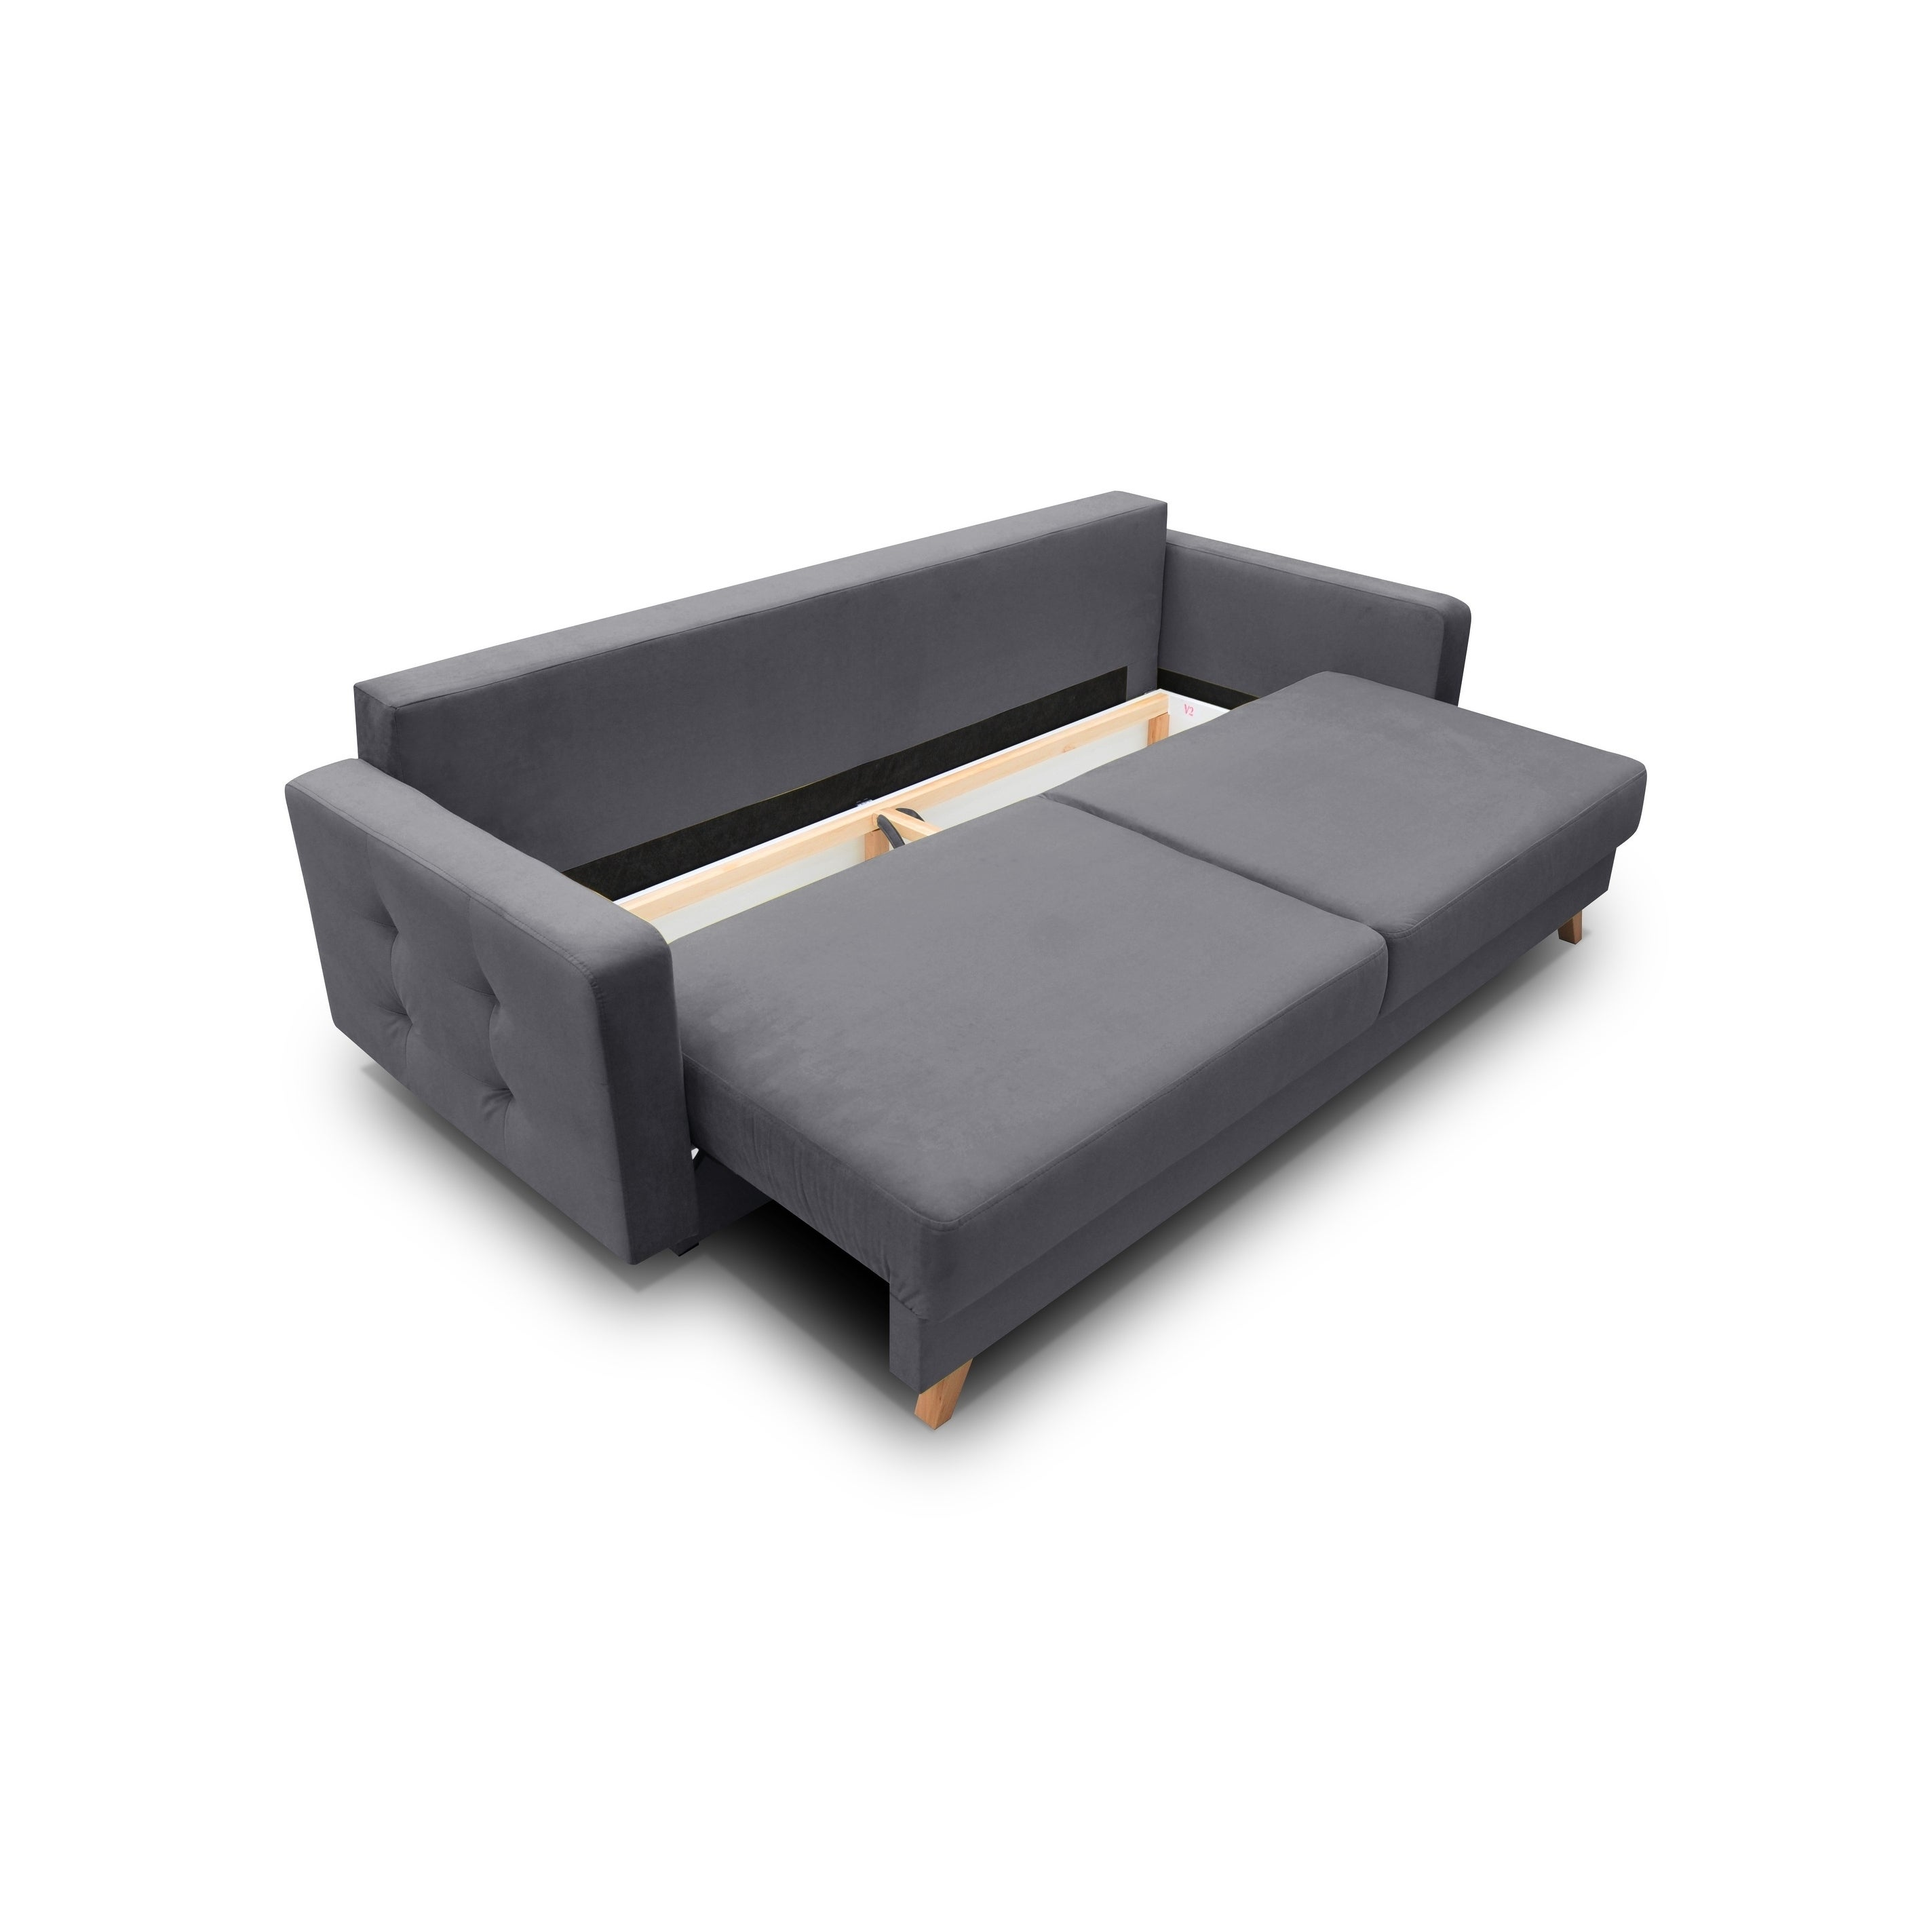 Vegas Futon Sofa Bed Queen Sleeper With Storage On Free Shipping Today 23558817